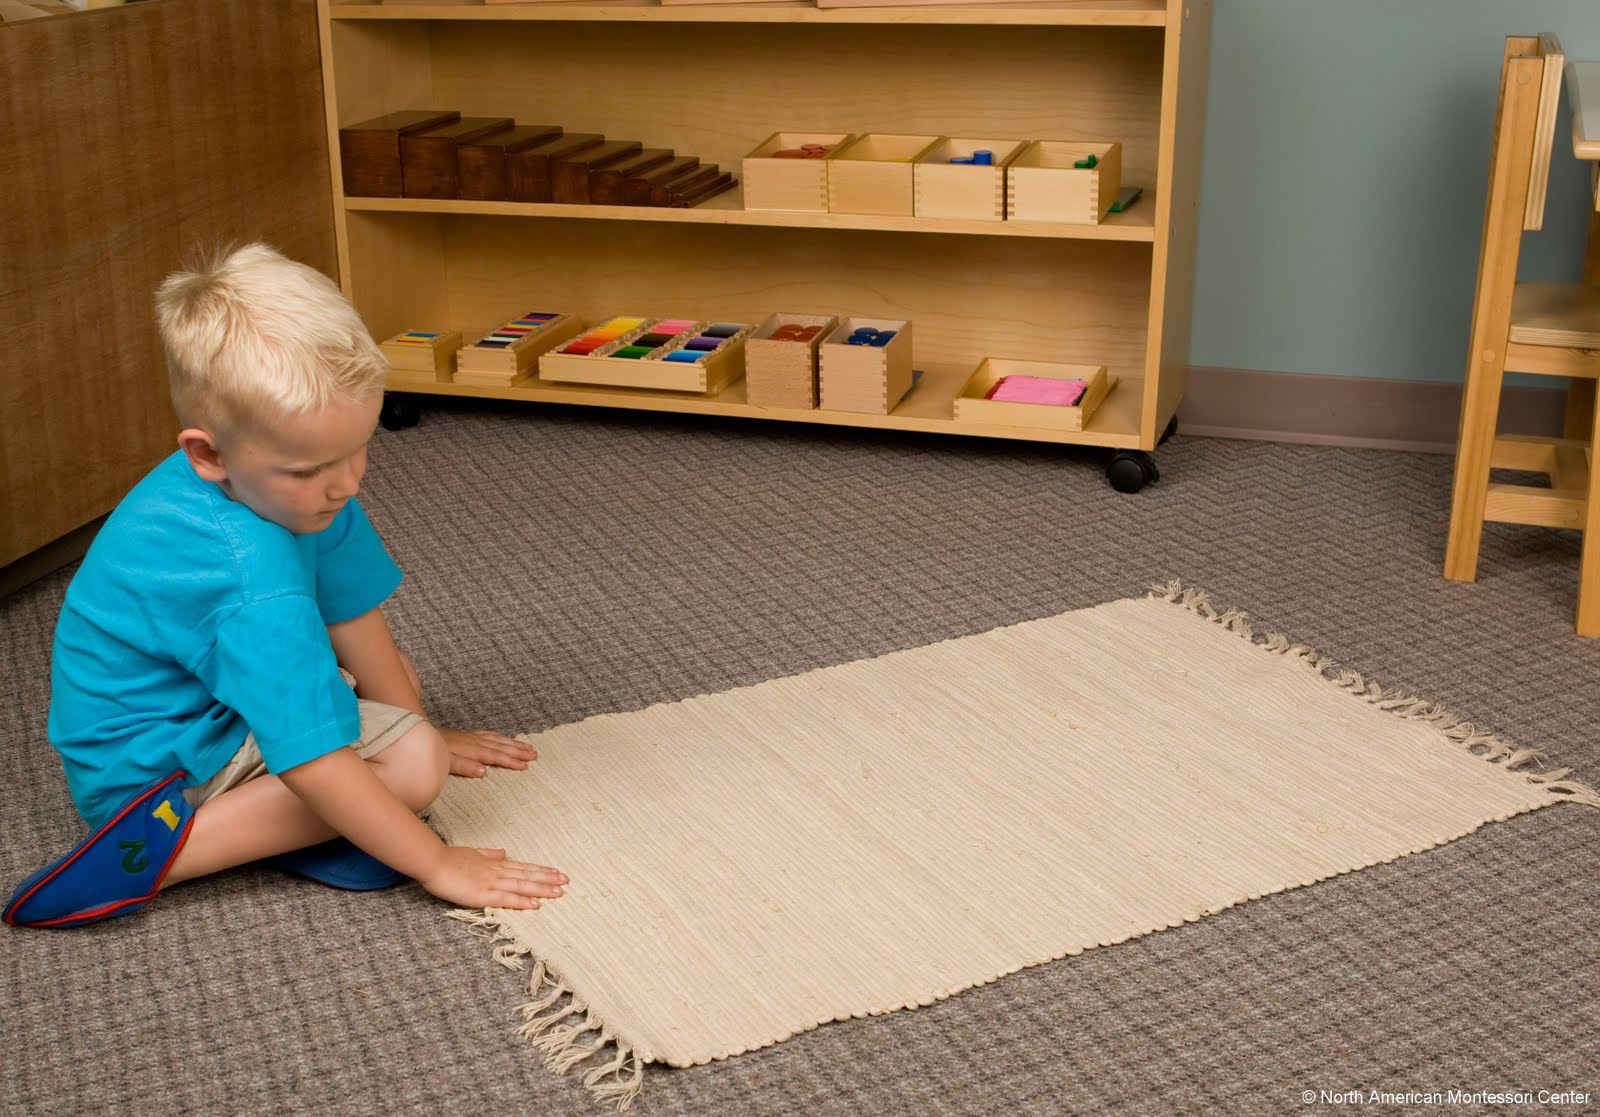 Floor mats and carpets - The Importance Of The Work Mat In The Montessori Prepared Environment